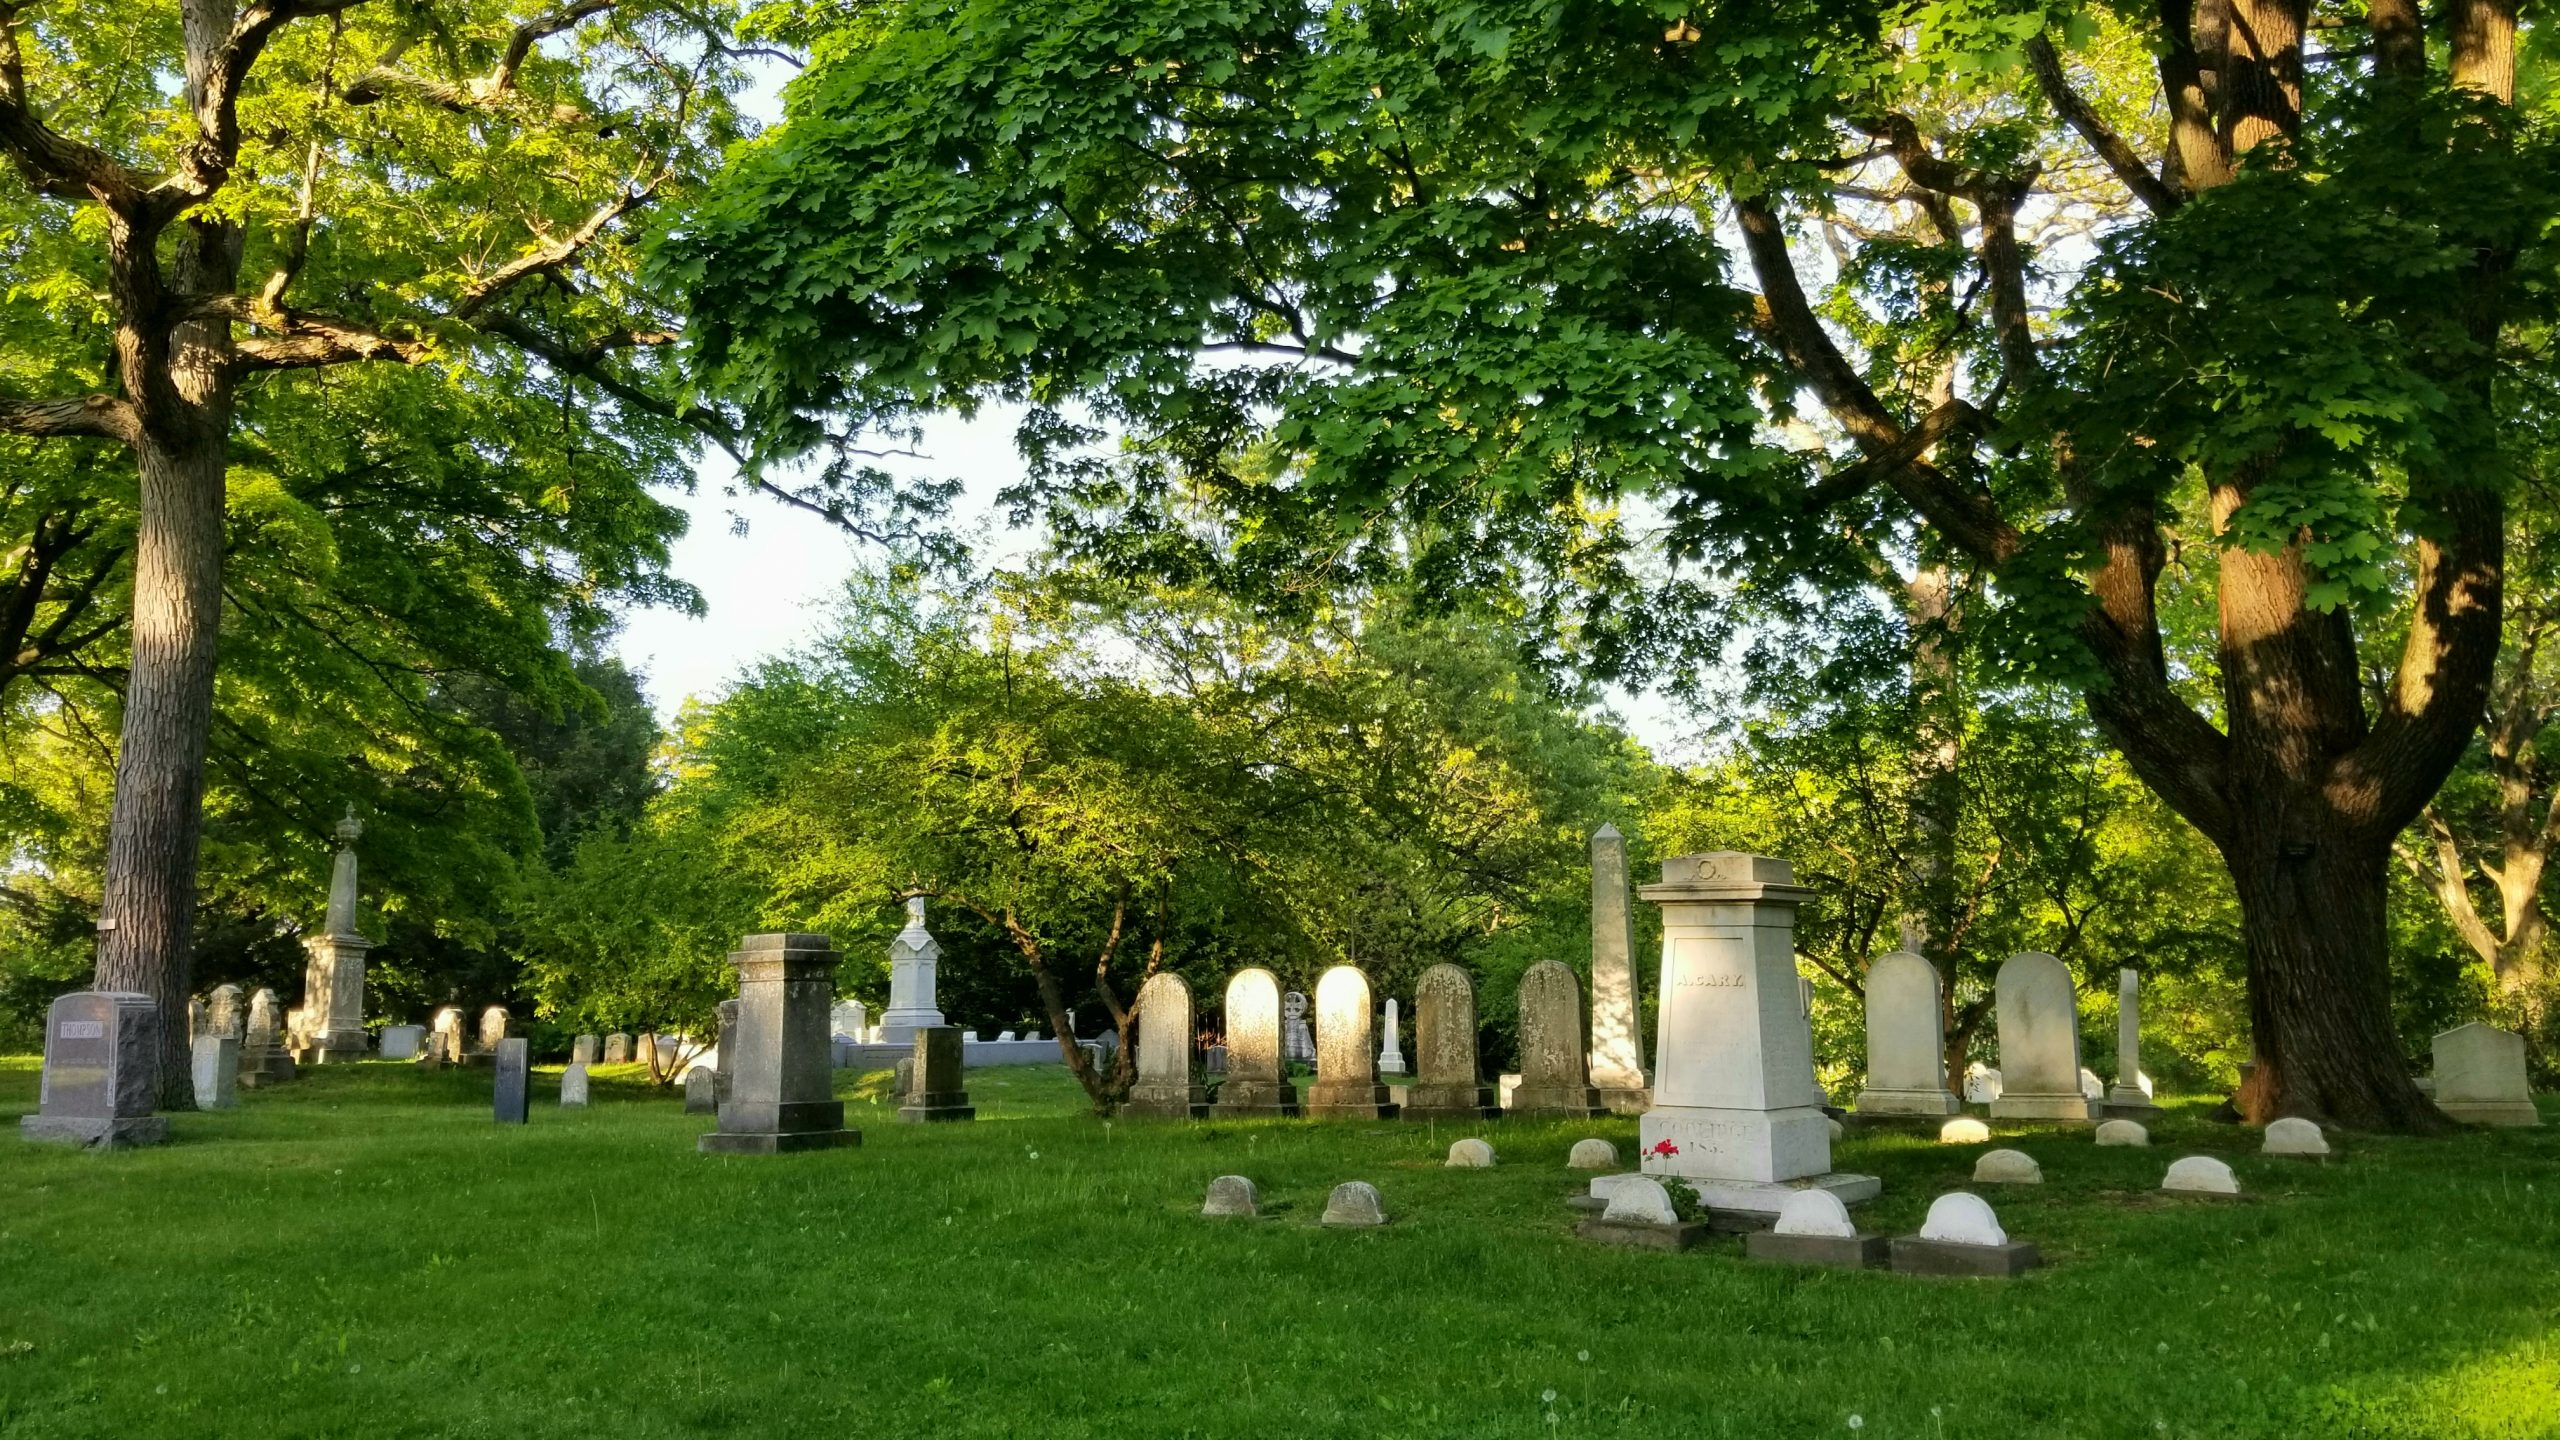 A wooded area characterized by old mature trees and 19th century marble memorials.